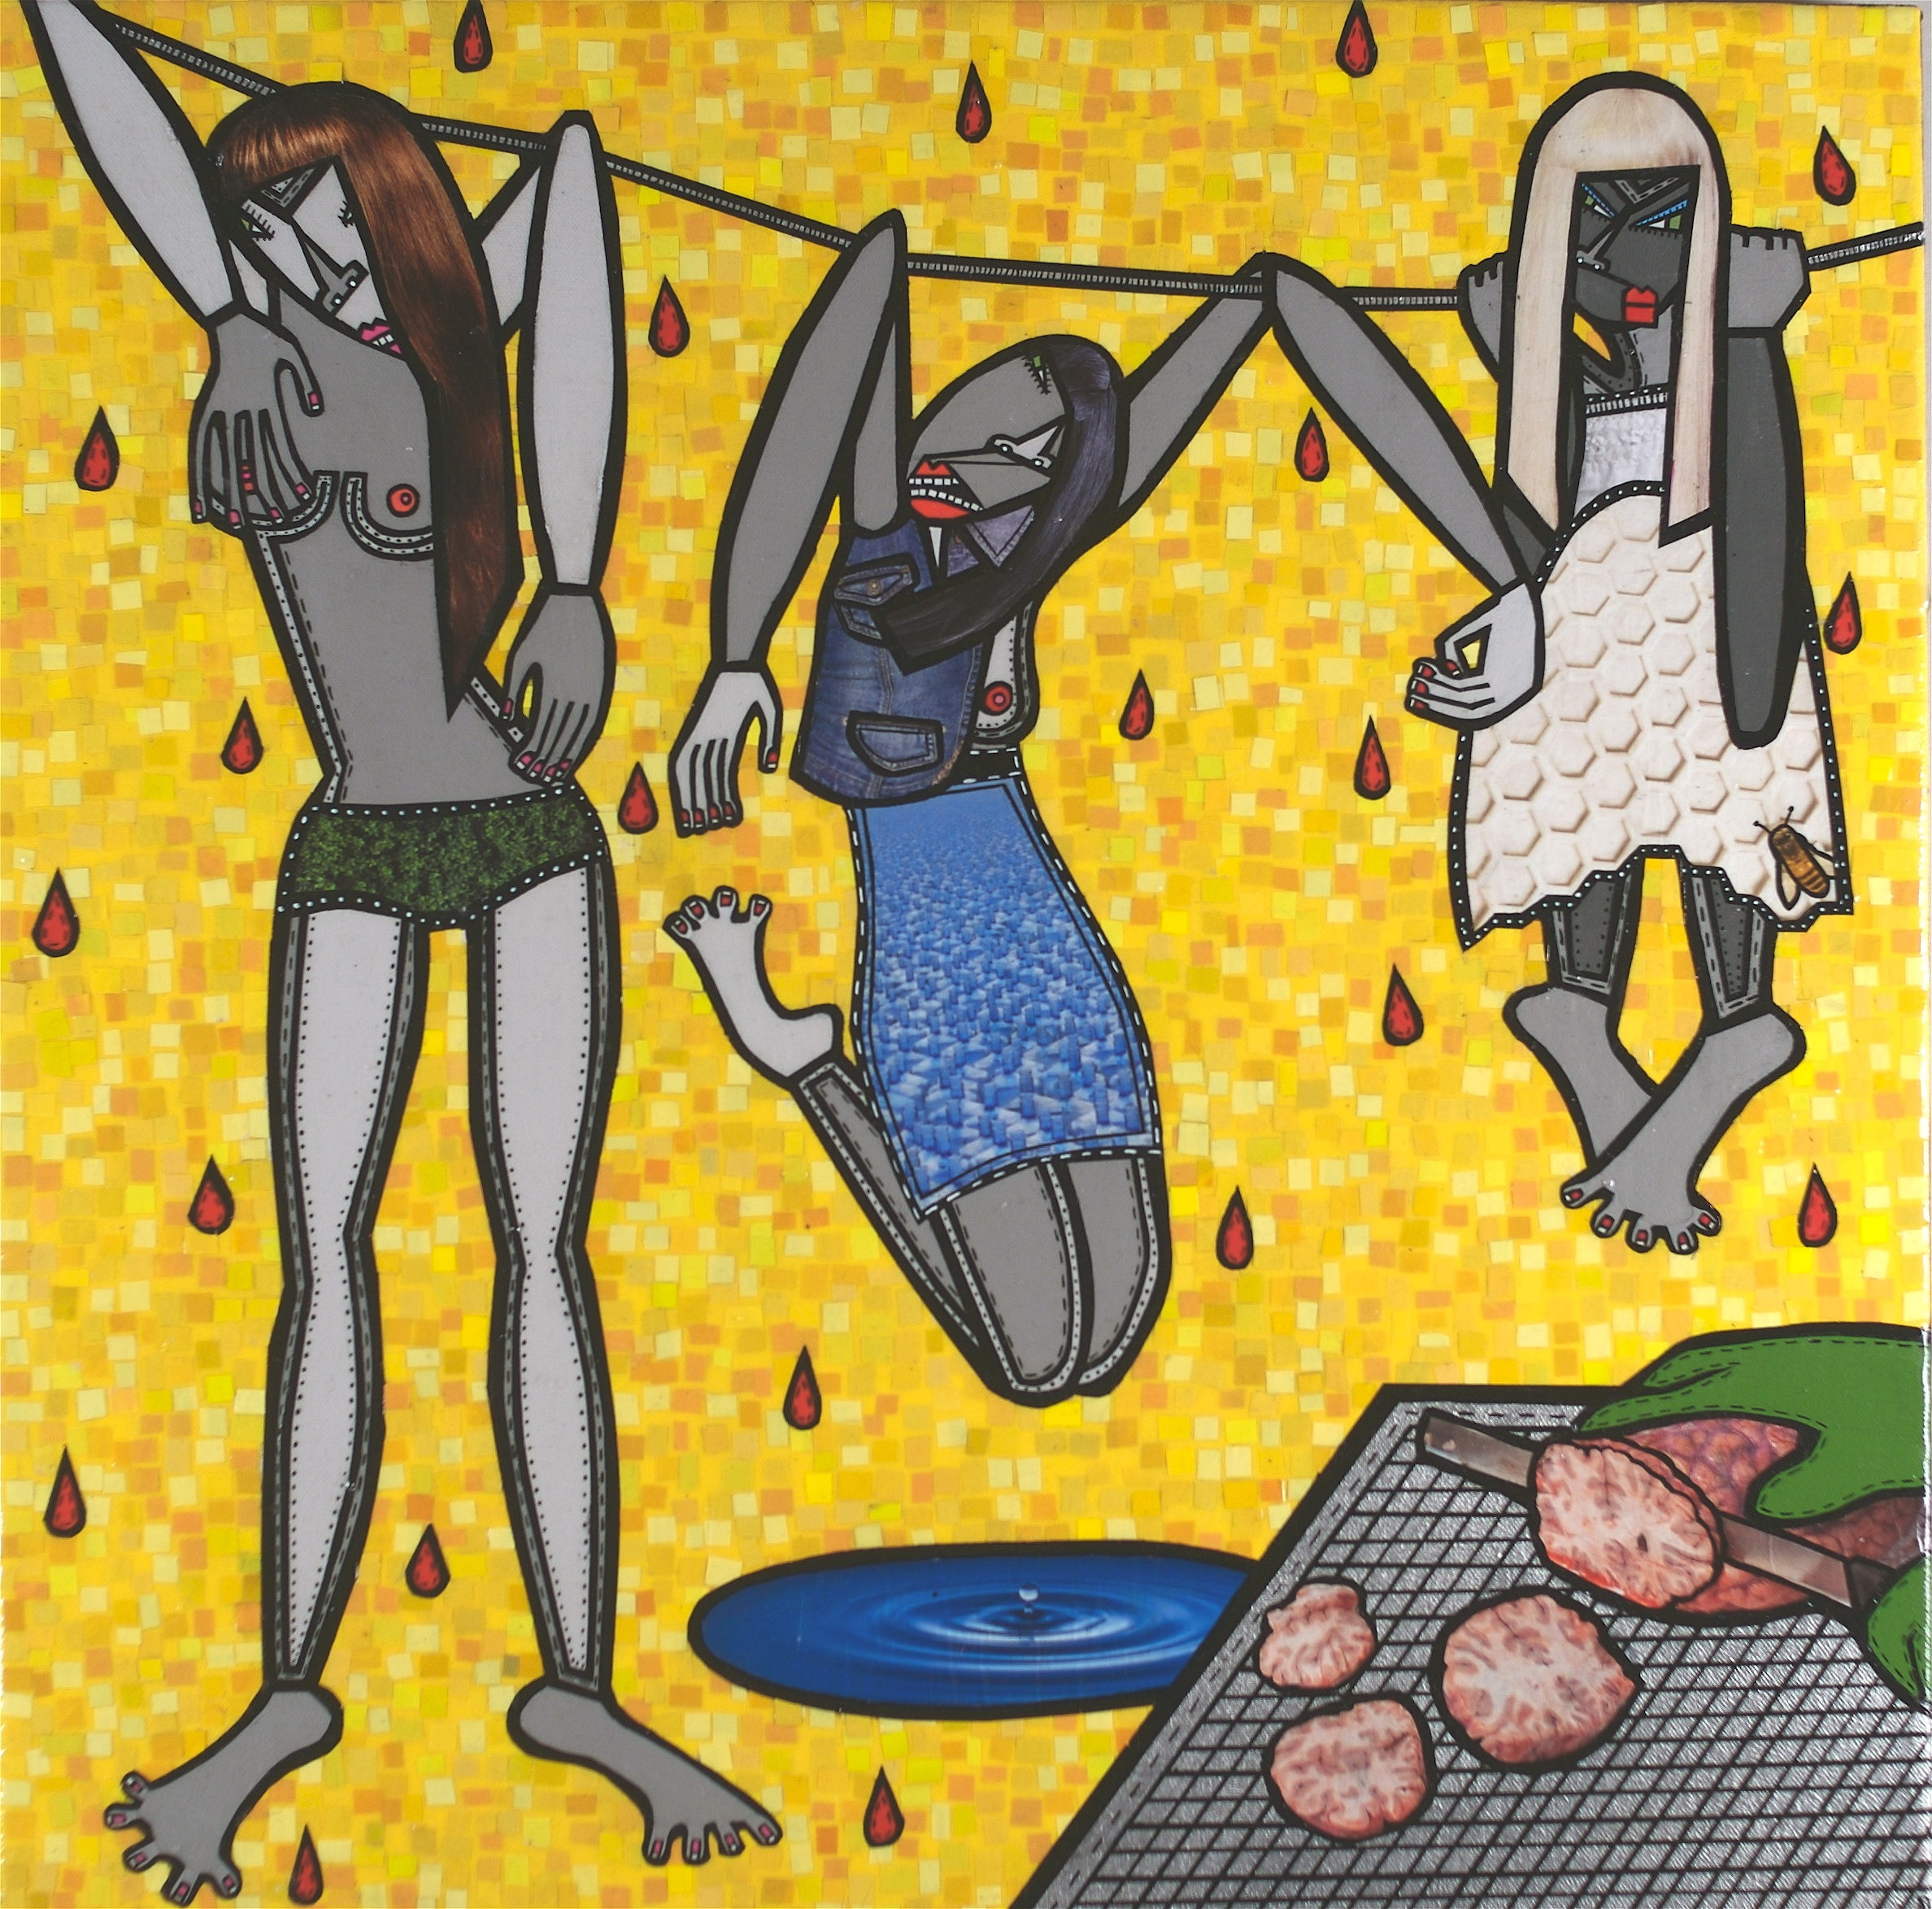 """Tenderloin, acrylic and paper collage on canvas, 20"""" x 20"""", 2009, private collection"""